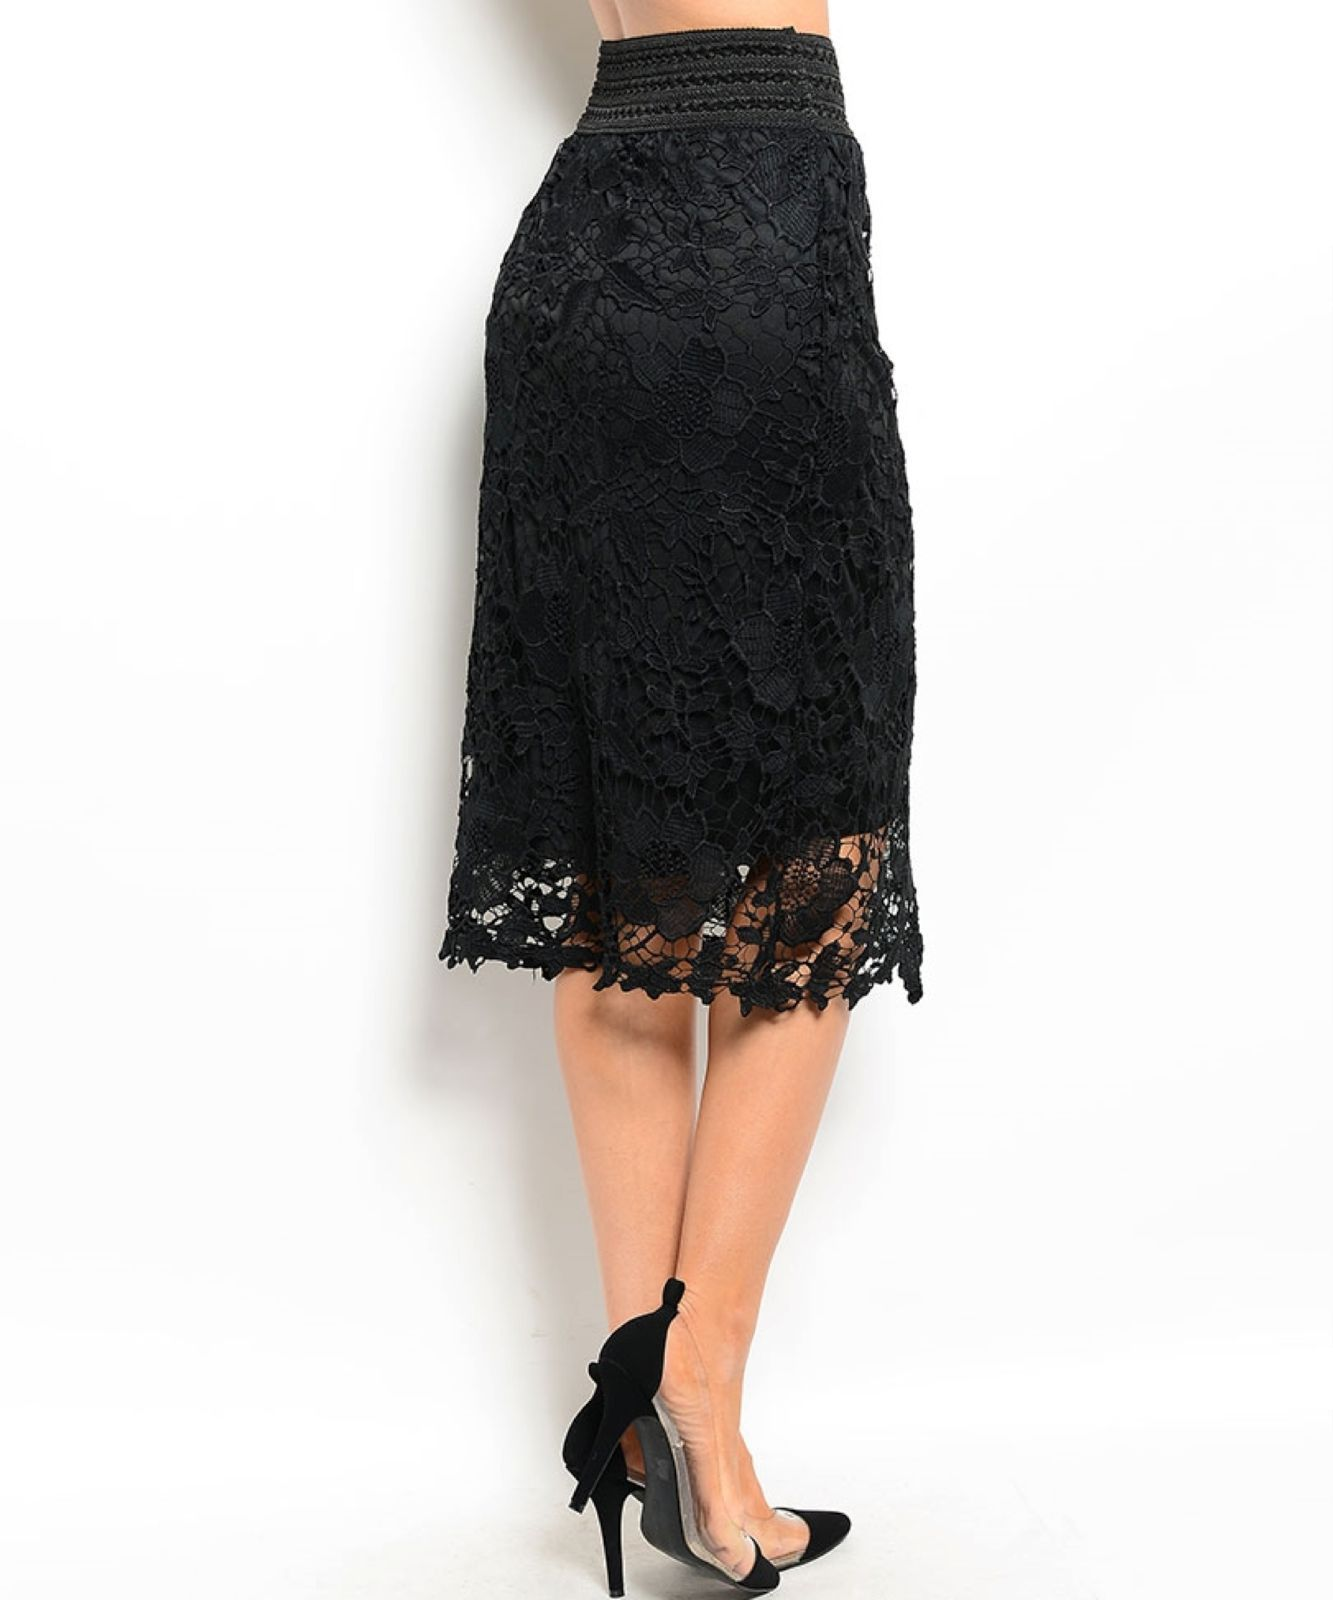 Image 4 of Chic Crochet Lace Lined Jr Skirt, Cocktail Club Party, Black, Ivory or White - B